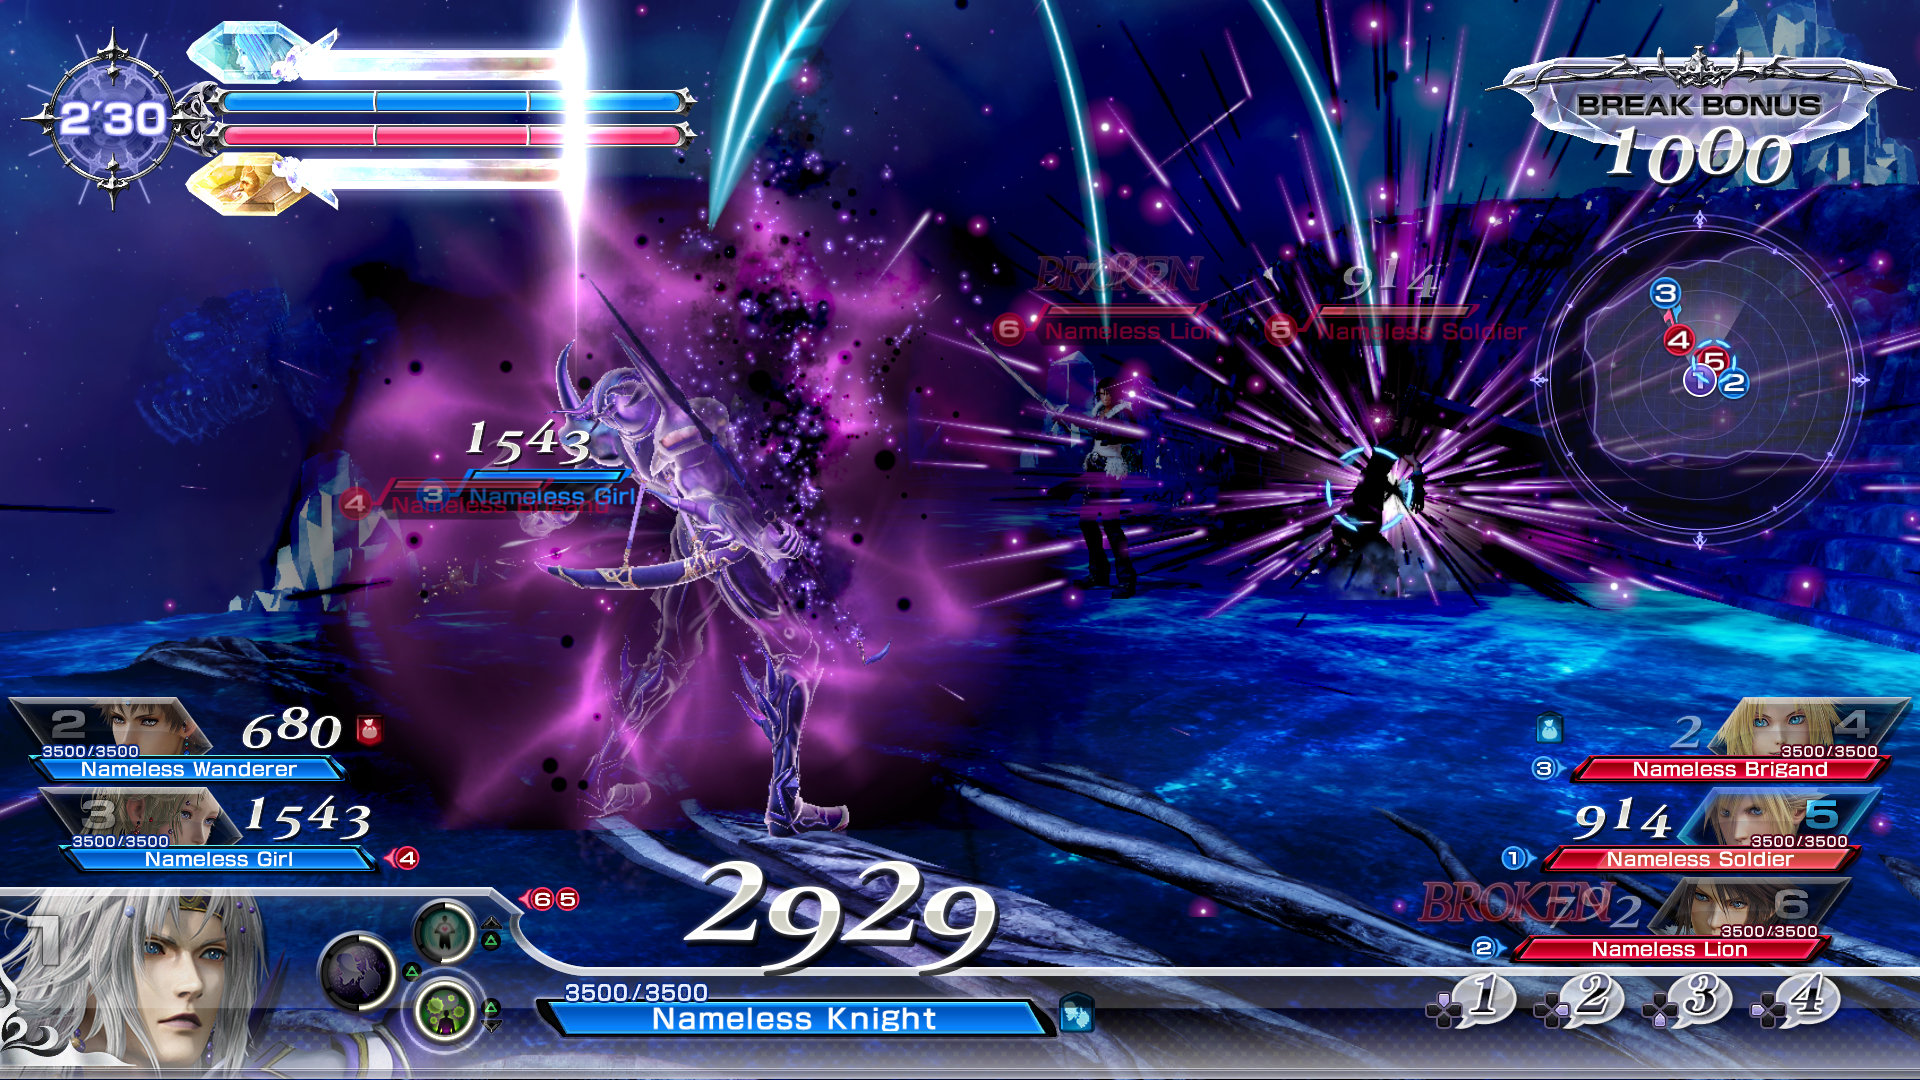 dissidia-final-fantasy-nt-screen-05-ps4-